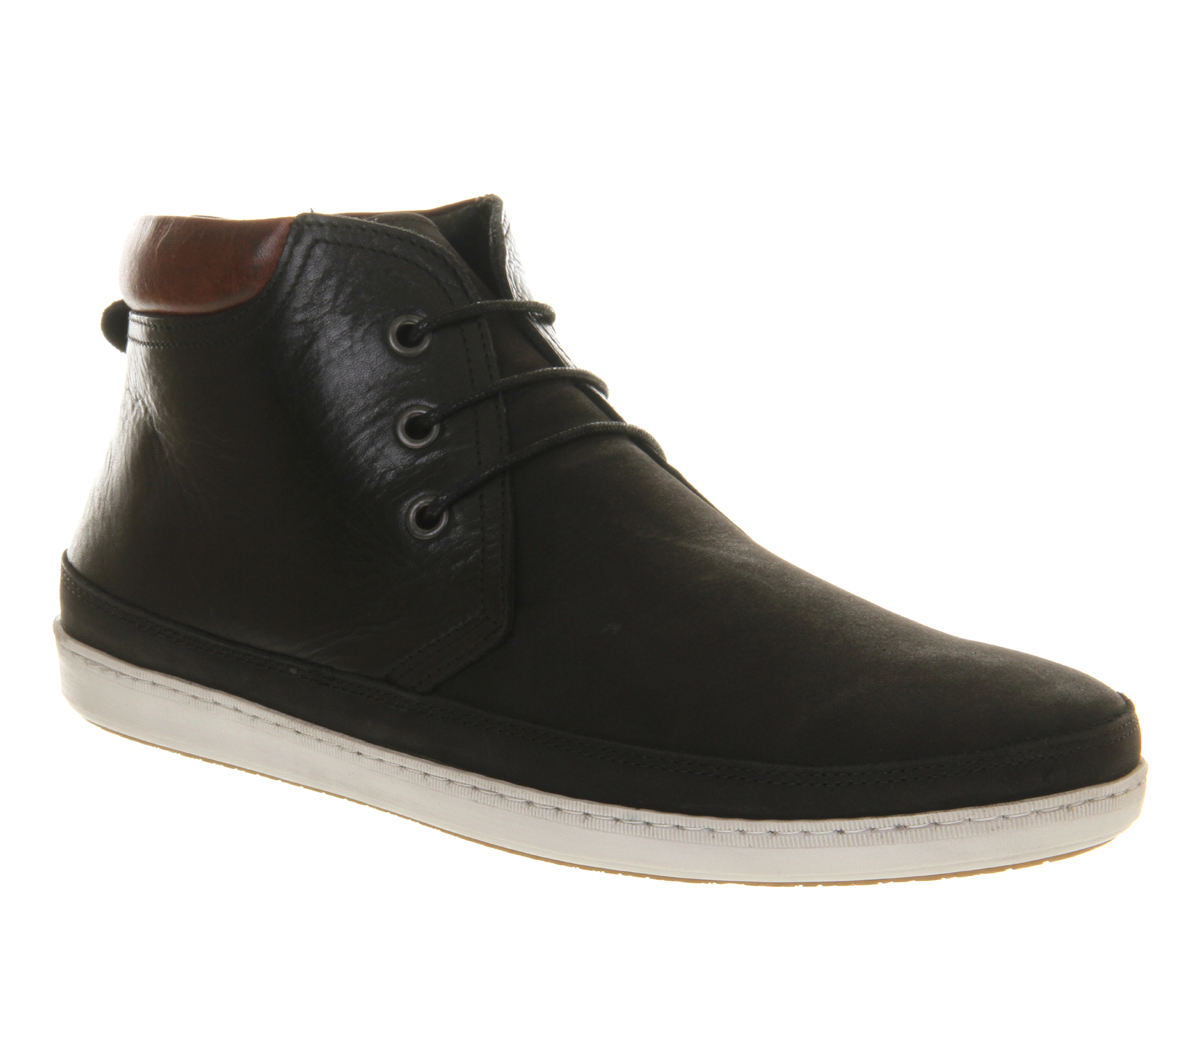 mens office skate chukka boot black leather mix boots ebay